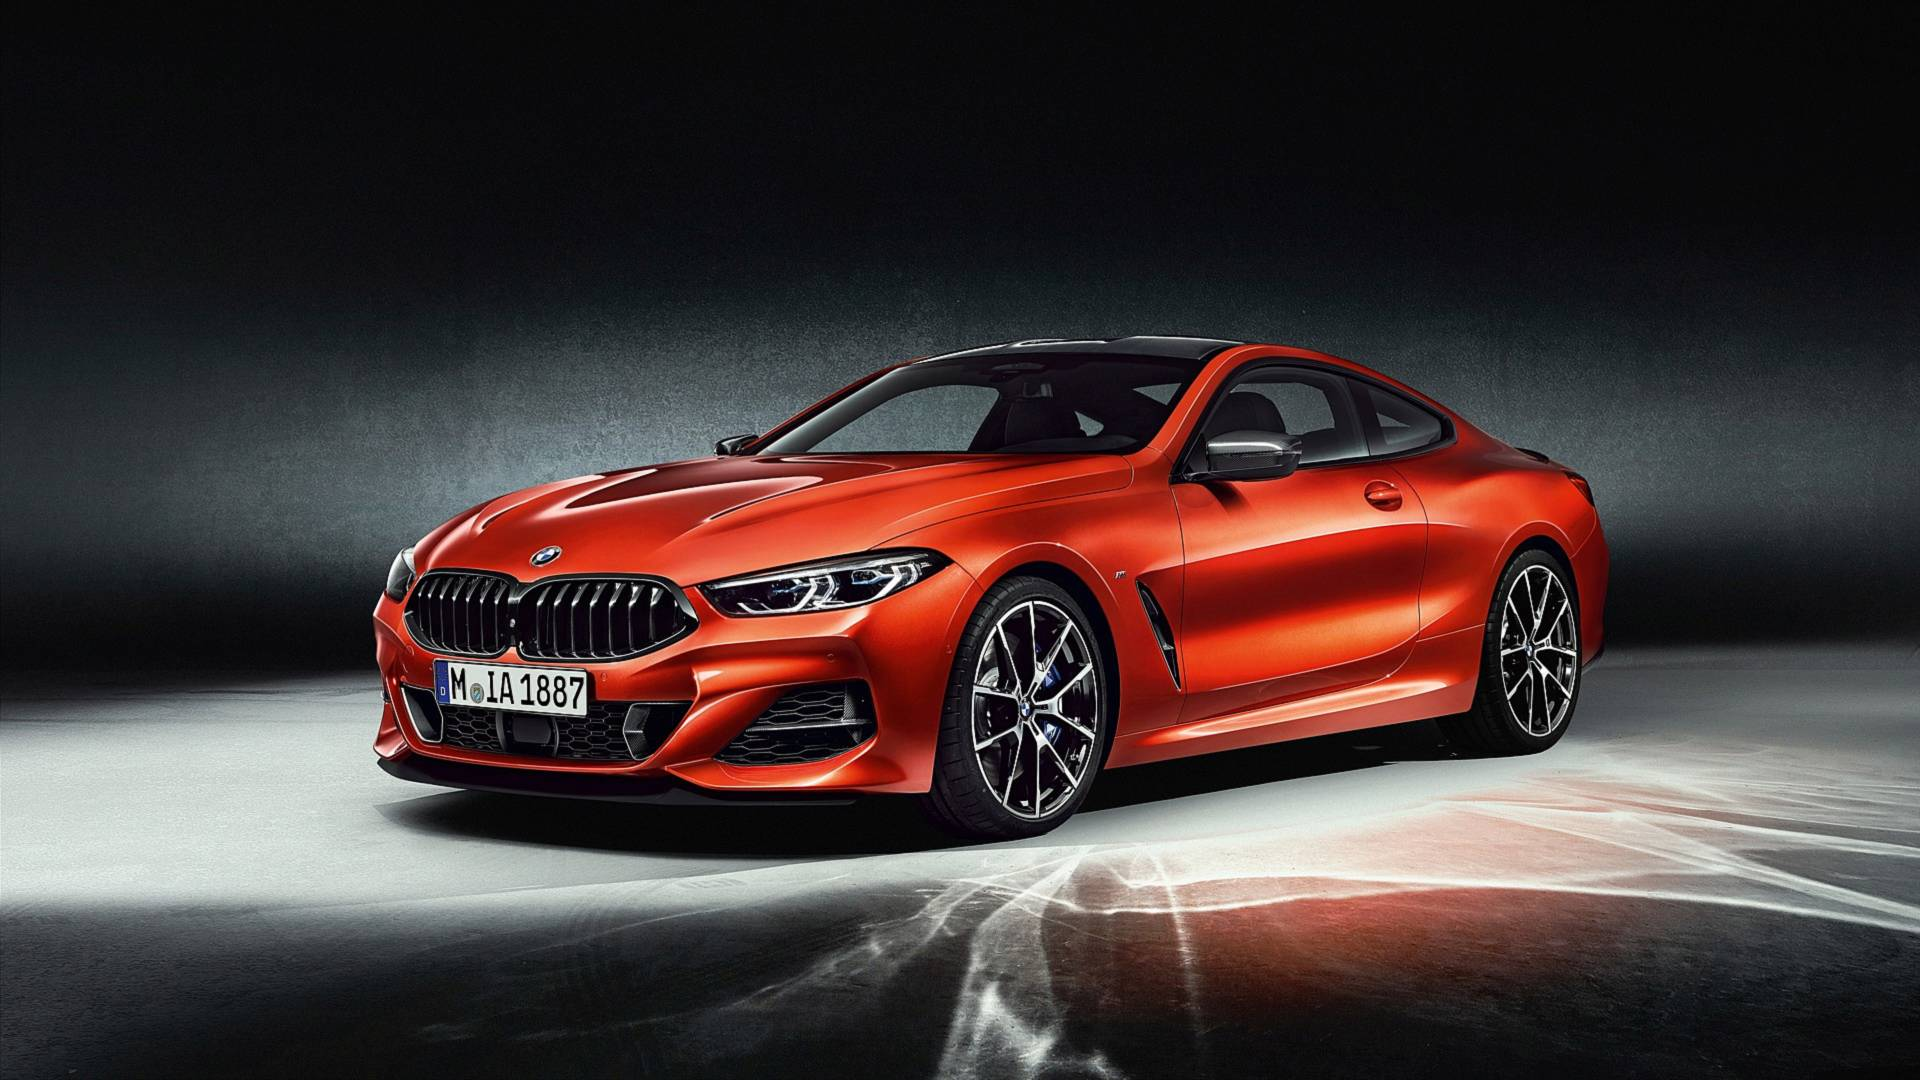 2019 Bmw 8 Series Pricing Announced 840d Xdrive Starts At Eur 100 000 Autoevolution